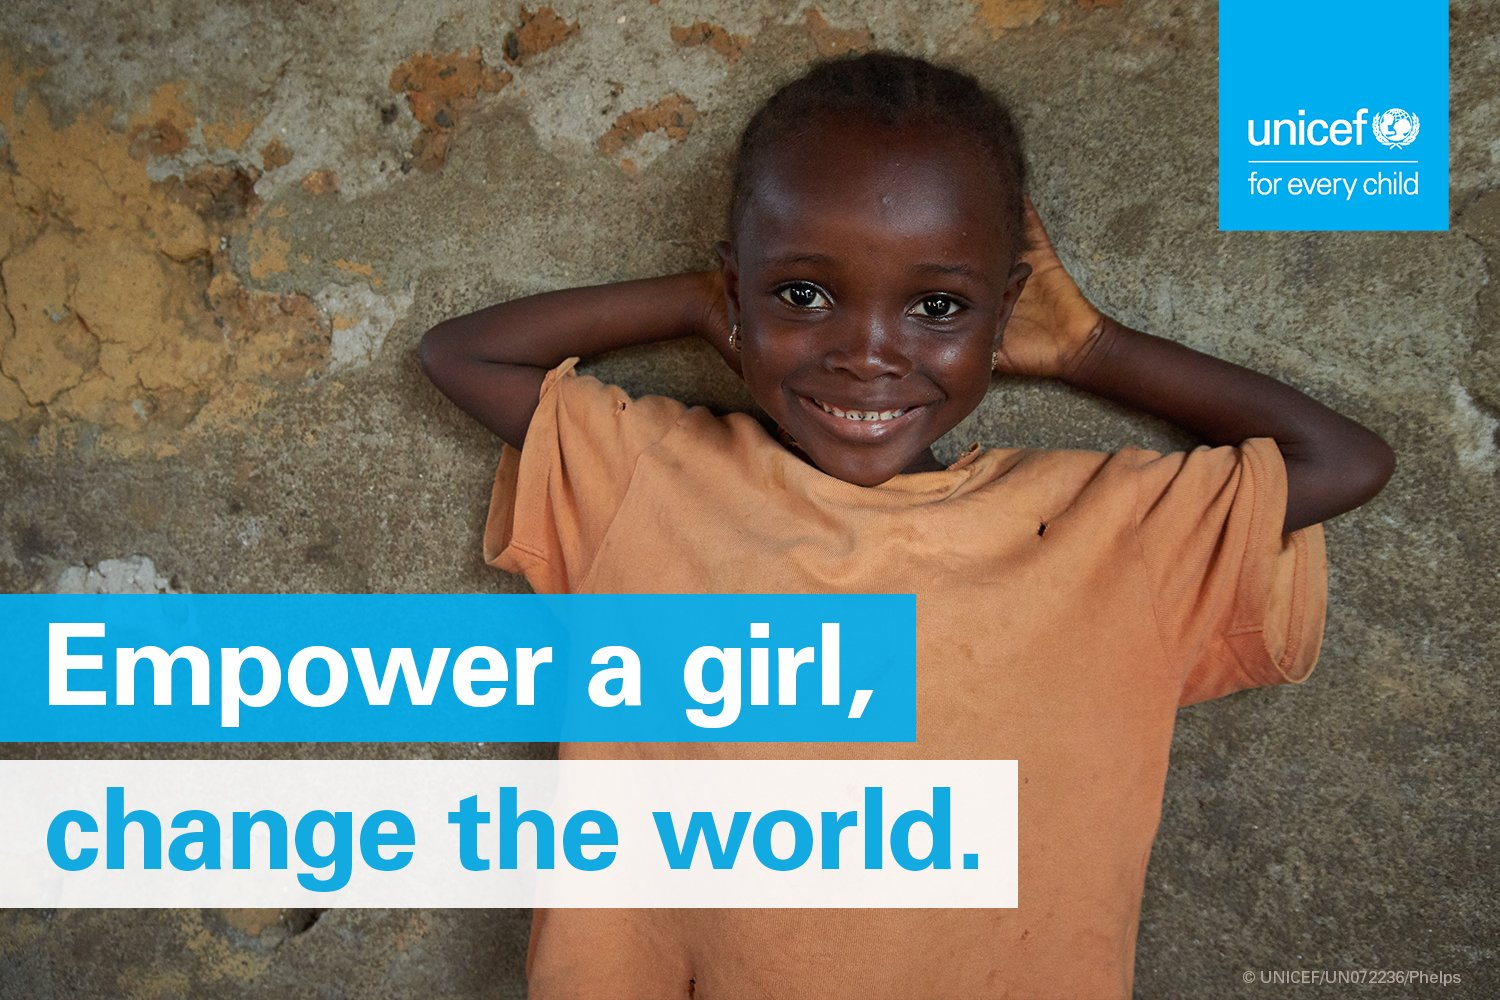 empowering girls will change our world Developing countries in our region and to end violence against women and girls empowering women showcases the achievements of women leaders around the world.